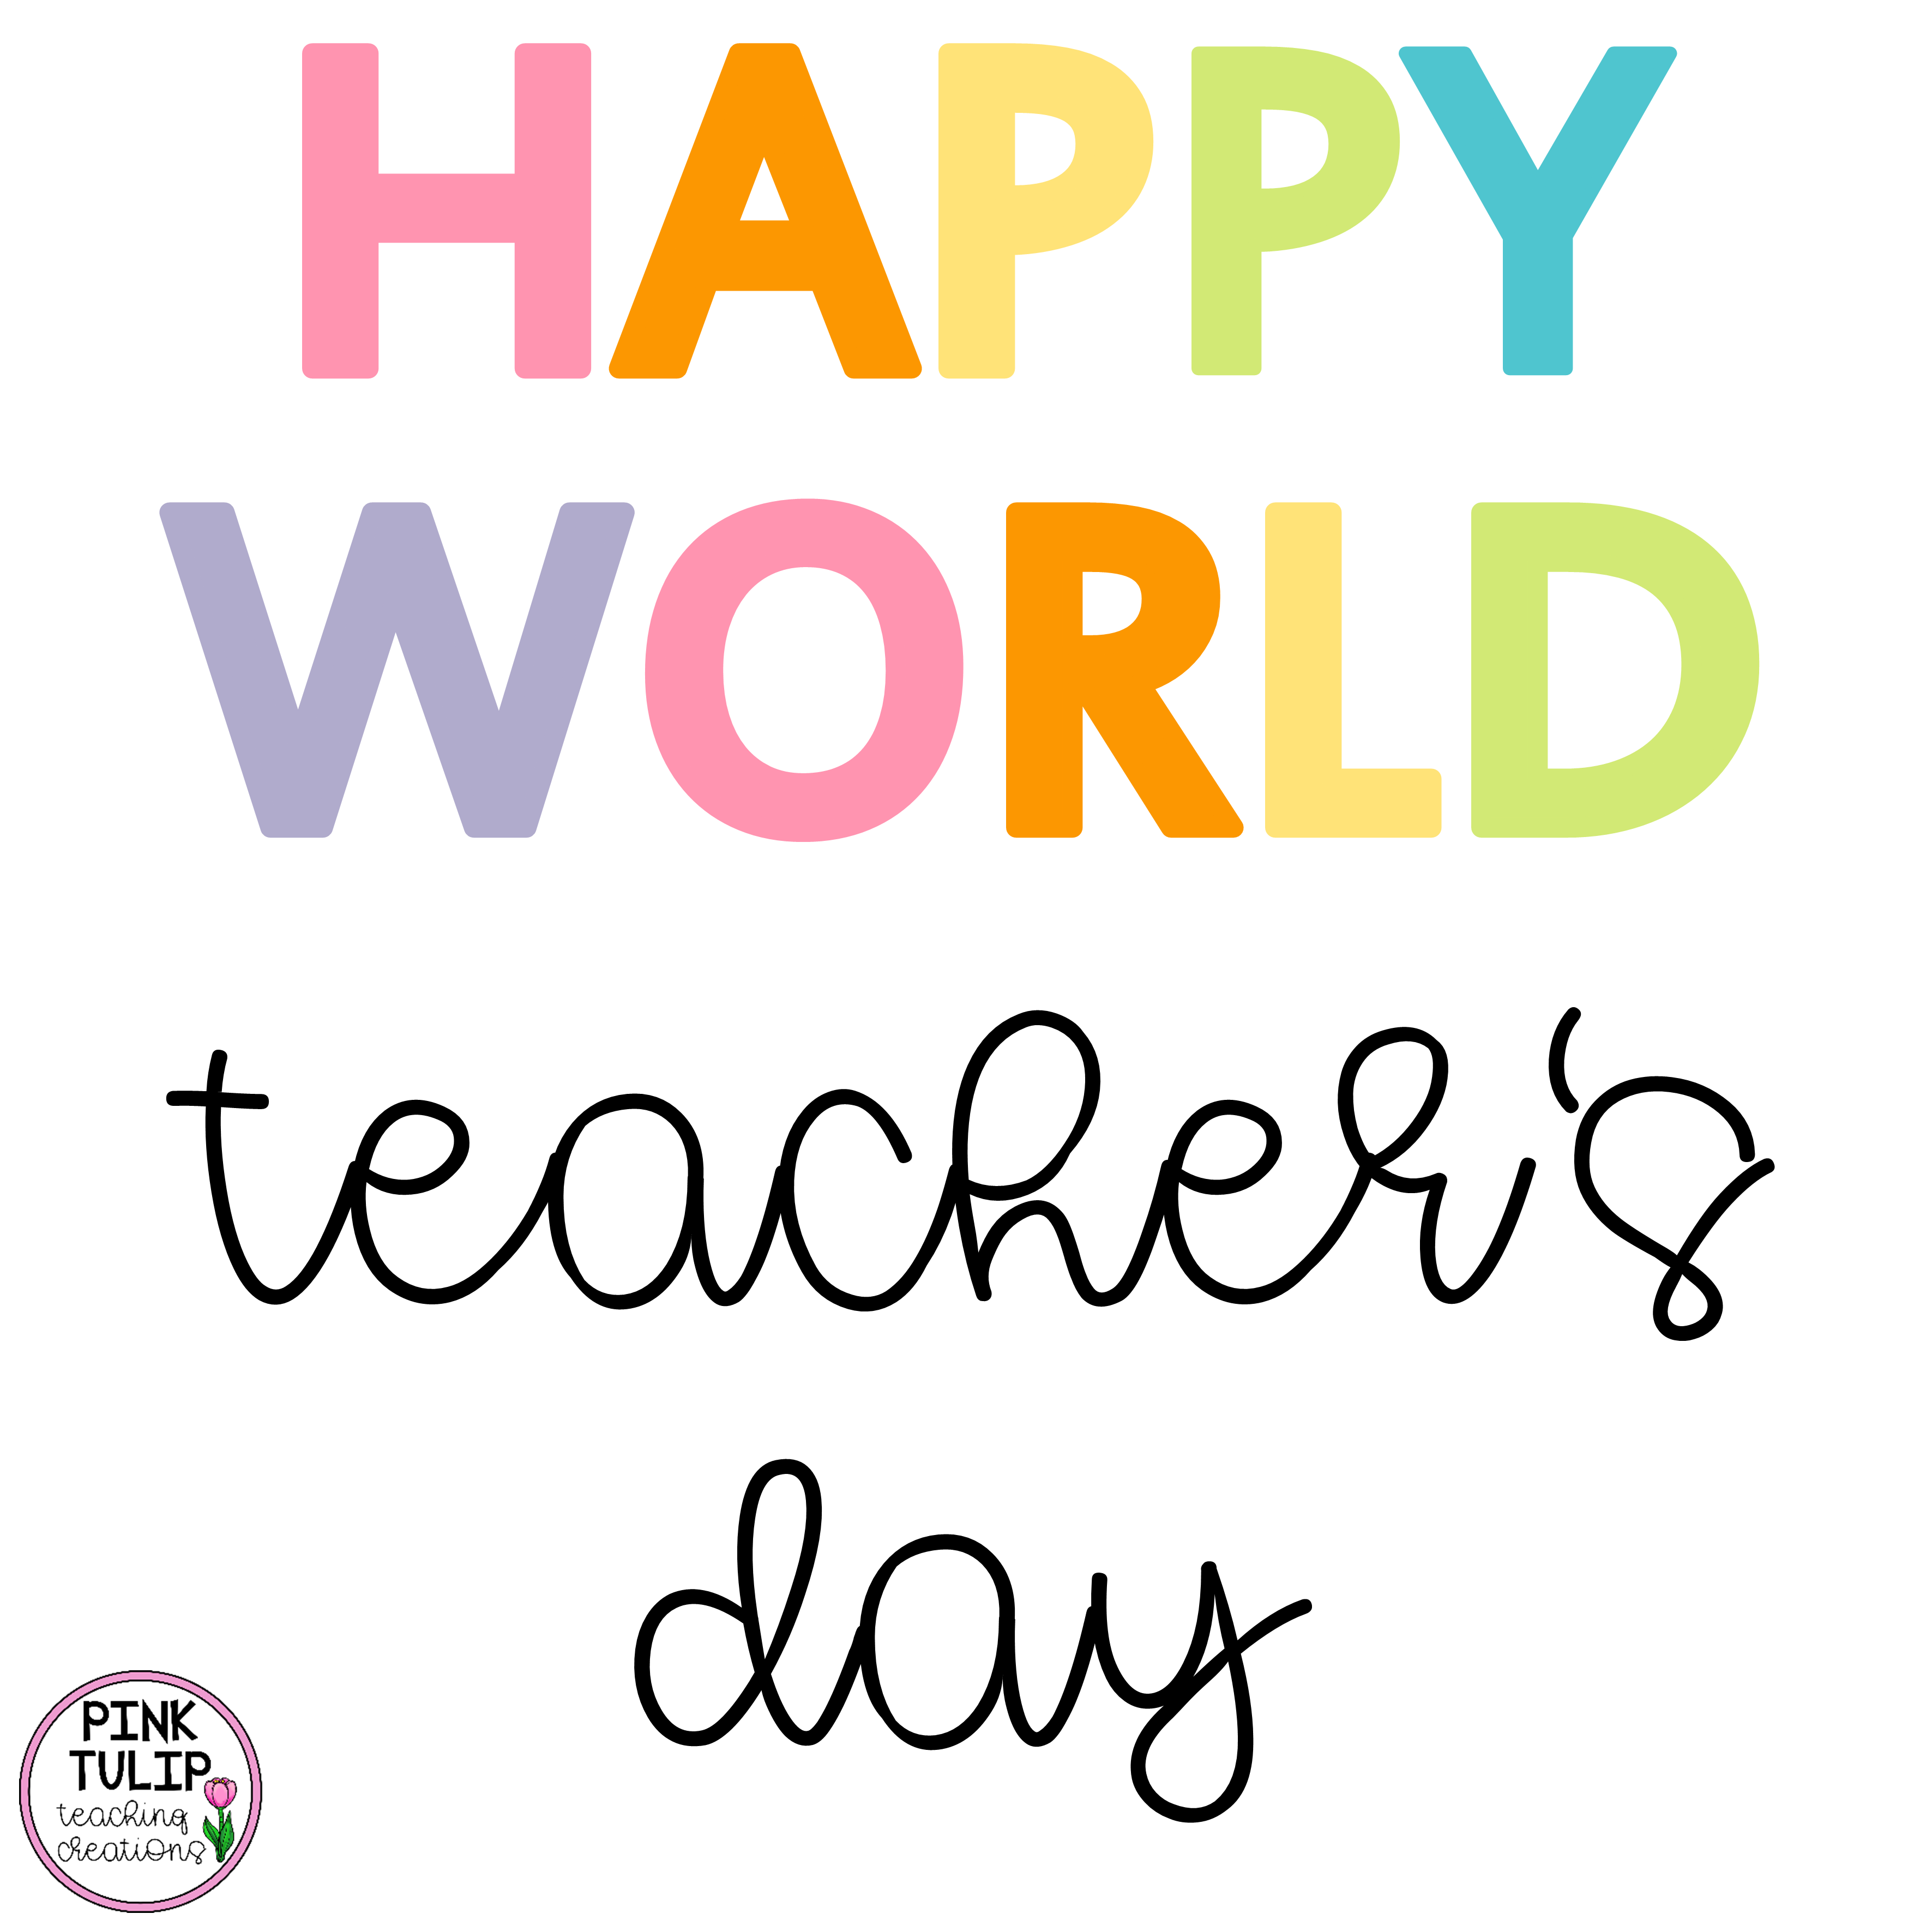 Happy World Teacher S Day Pink Tulip Creations Teaching Quotes Please Feel Free To Share A Classroom Motivation Teaching Quotes Classroom Motivational Quotes